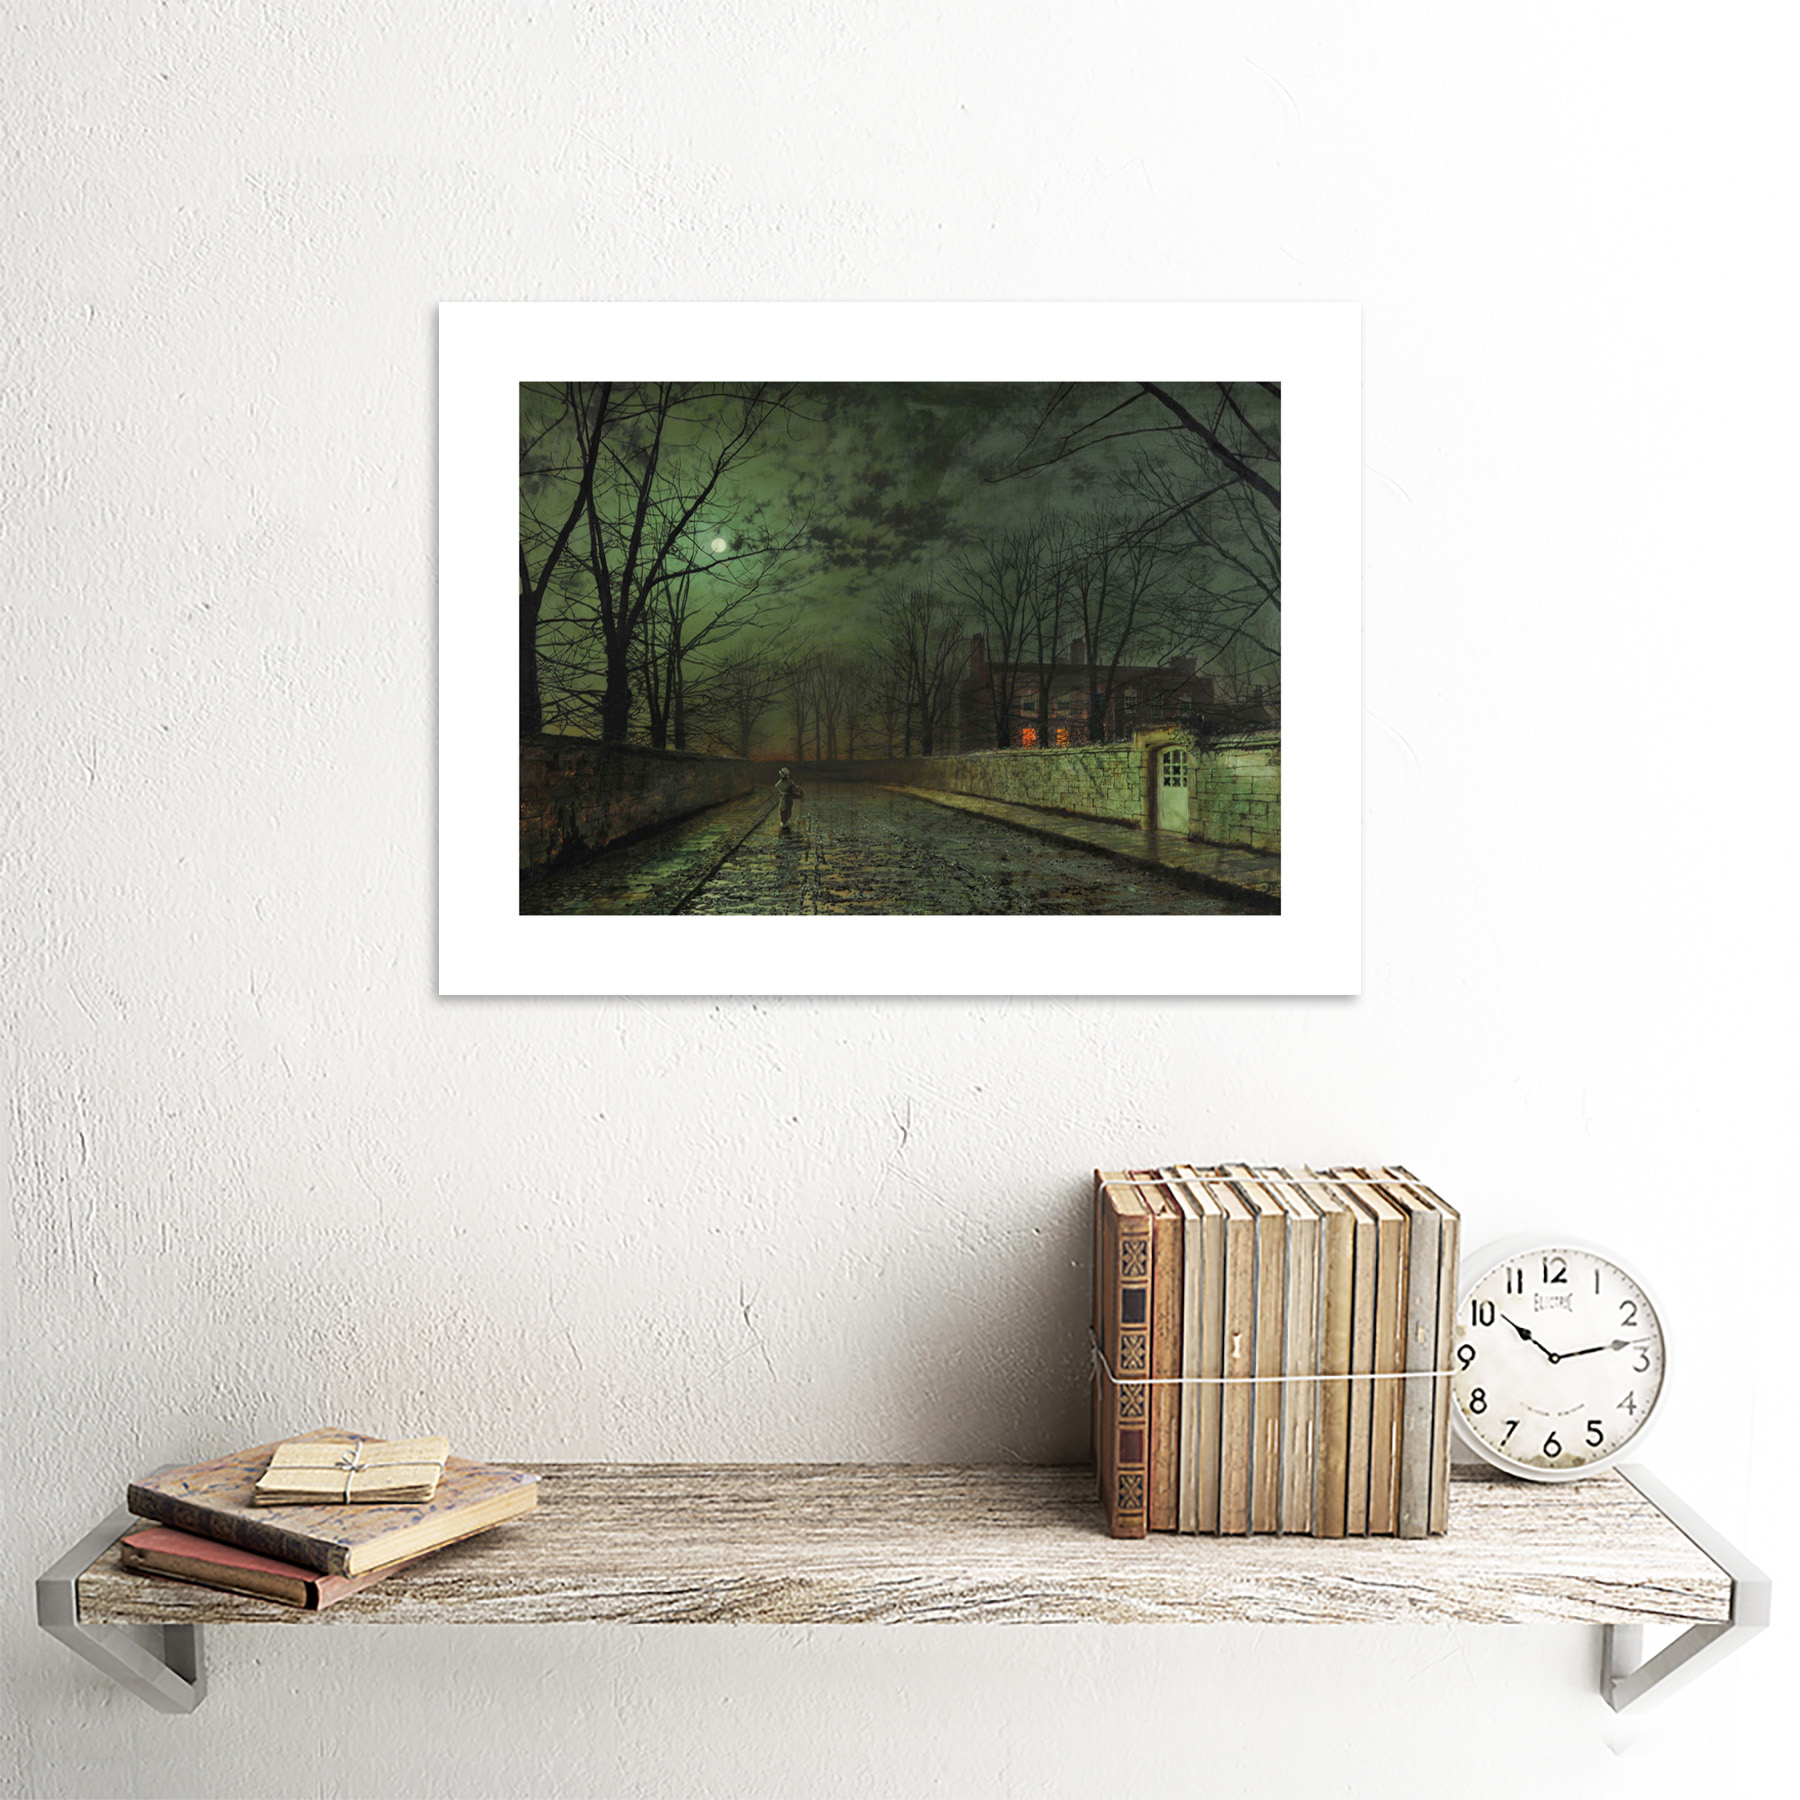 thumbnail 18 - Grimshaw-Moonlit-Street-Painting-Framed-Art-Print-Picture-Mount-12x16-Inch